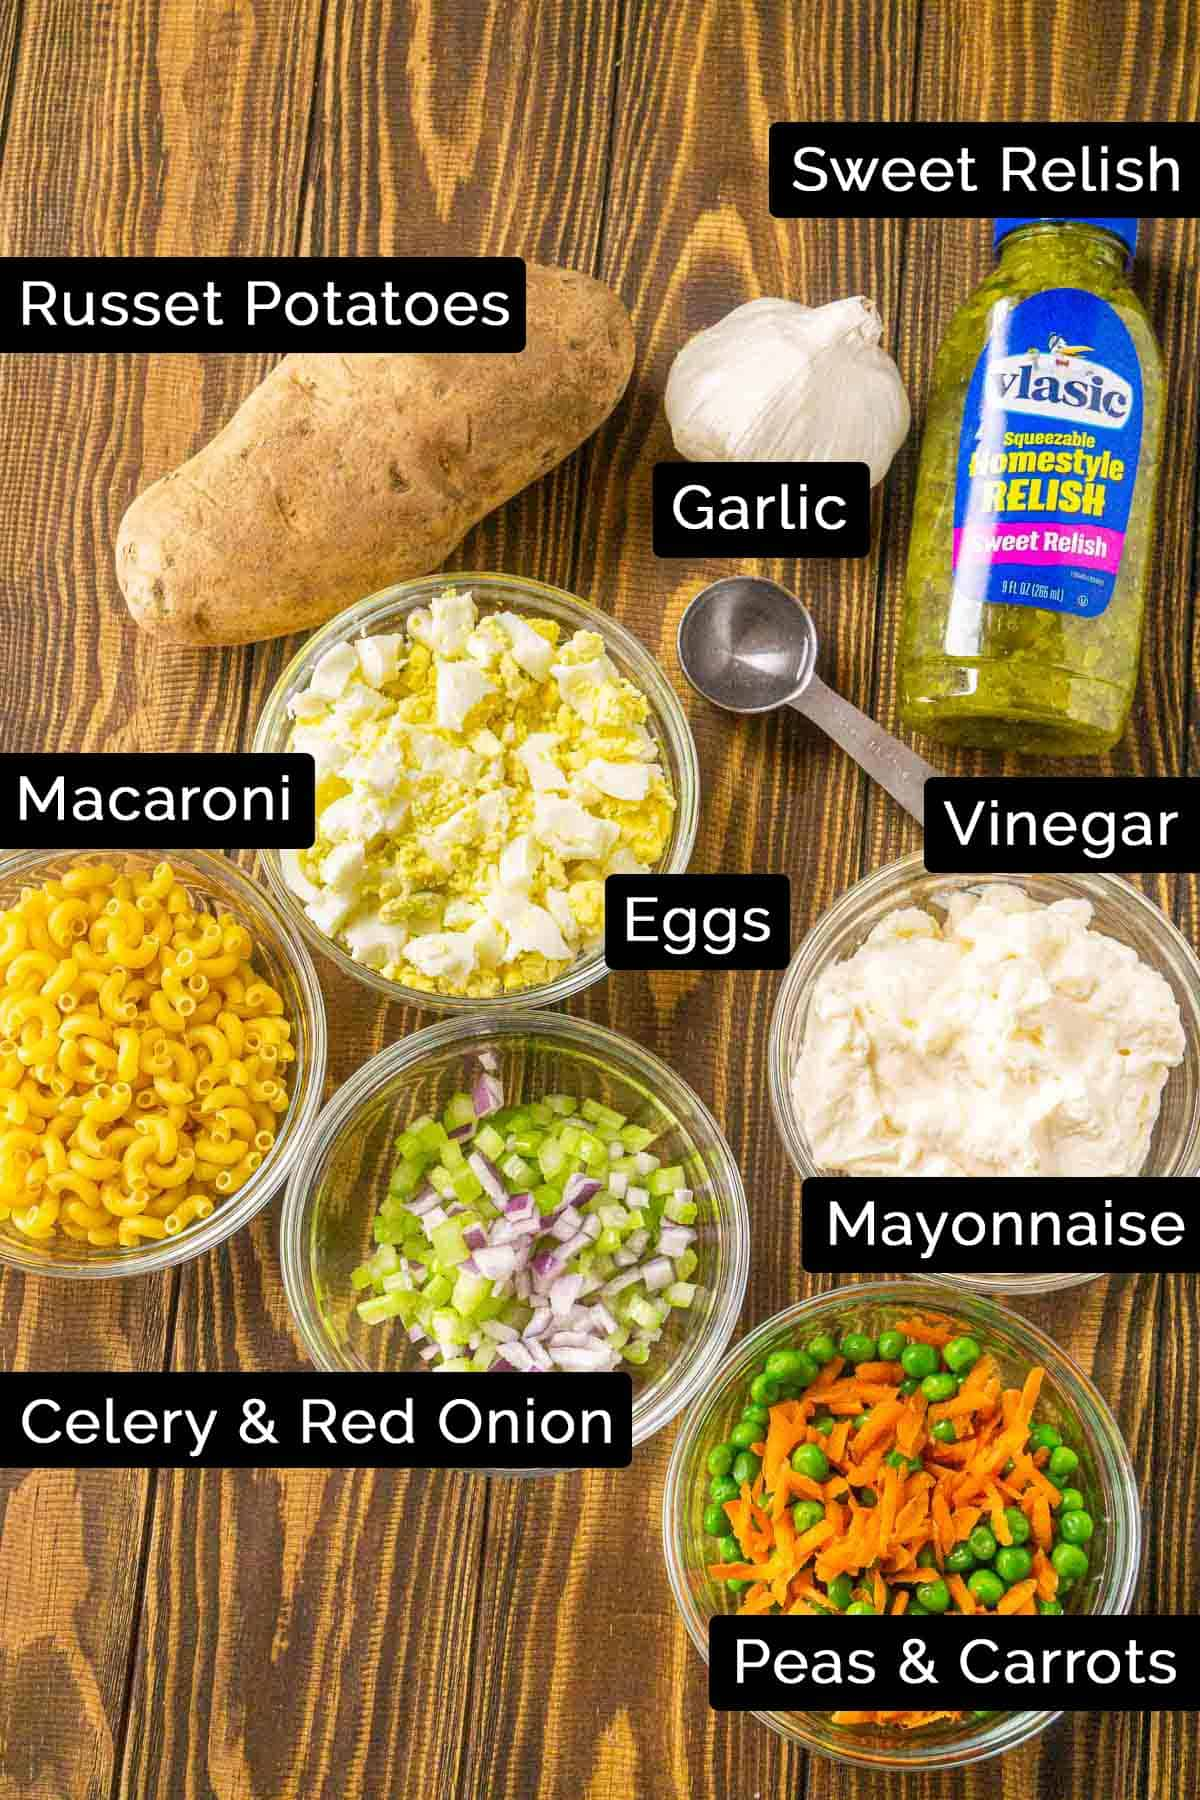 The Hawaii potato salad ingredients with labels on a wooden board.